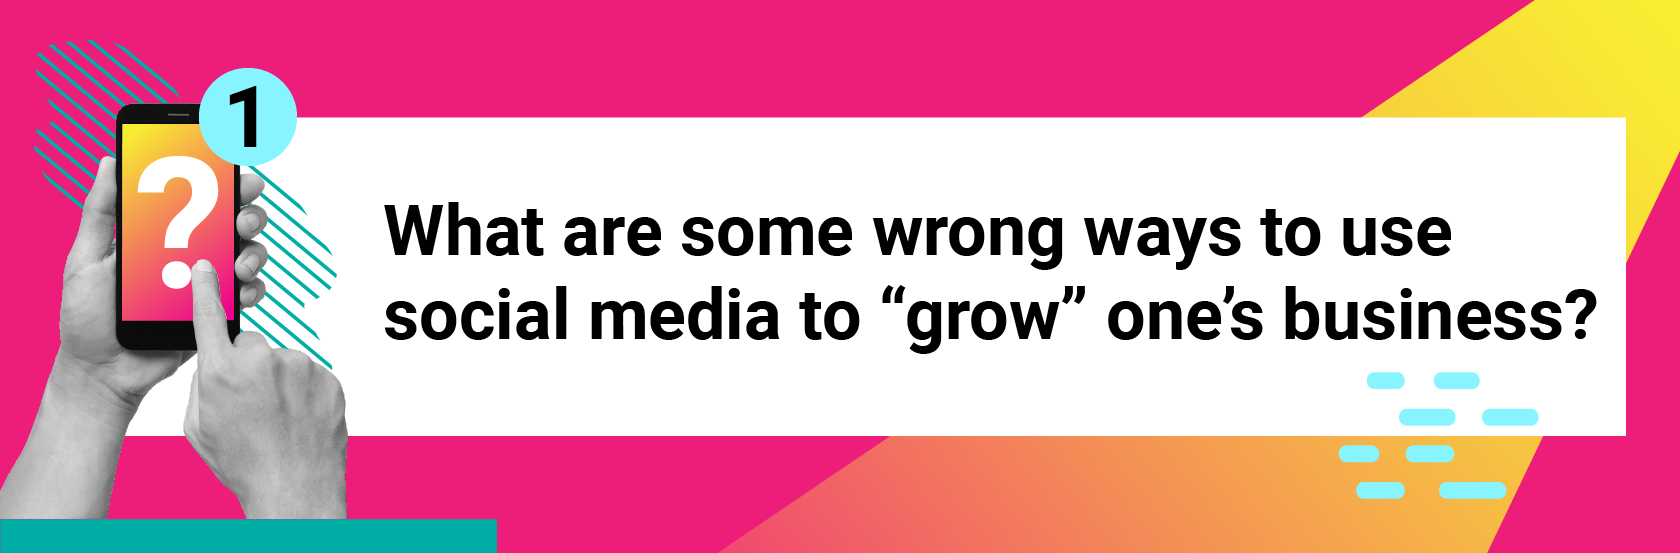 "What are some wrong ways to use social media to ""grow"" one's business?"